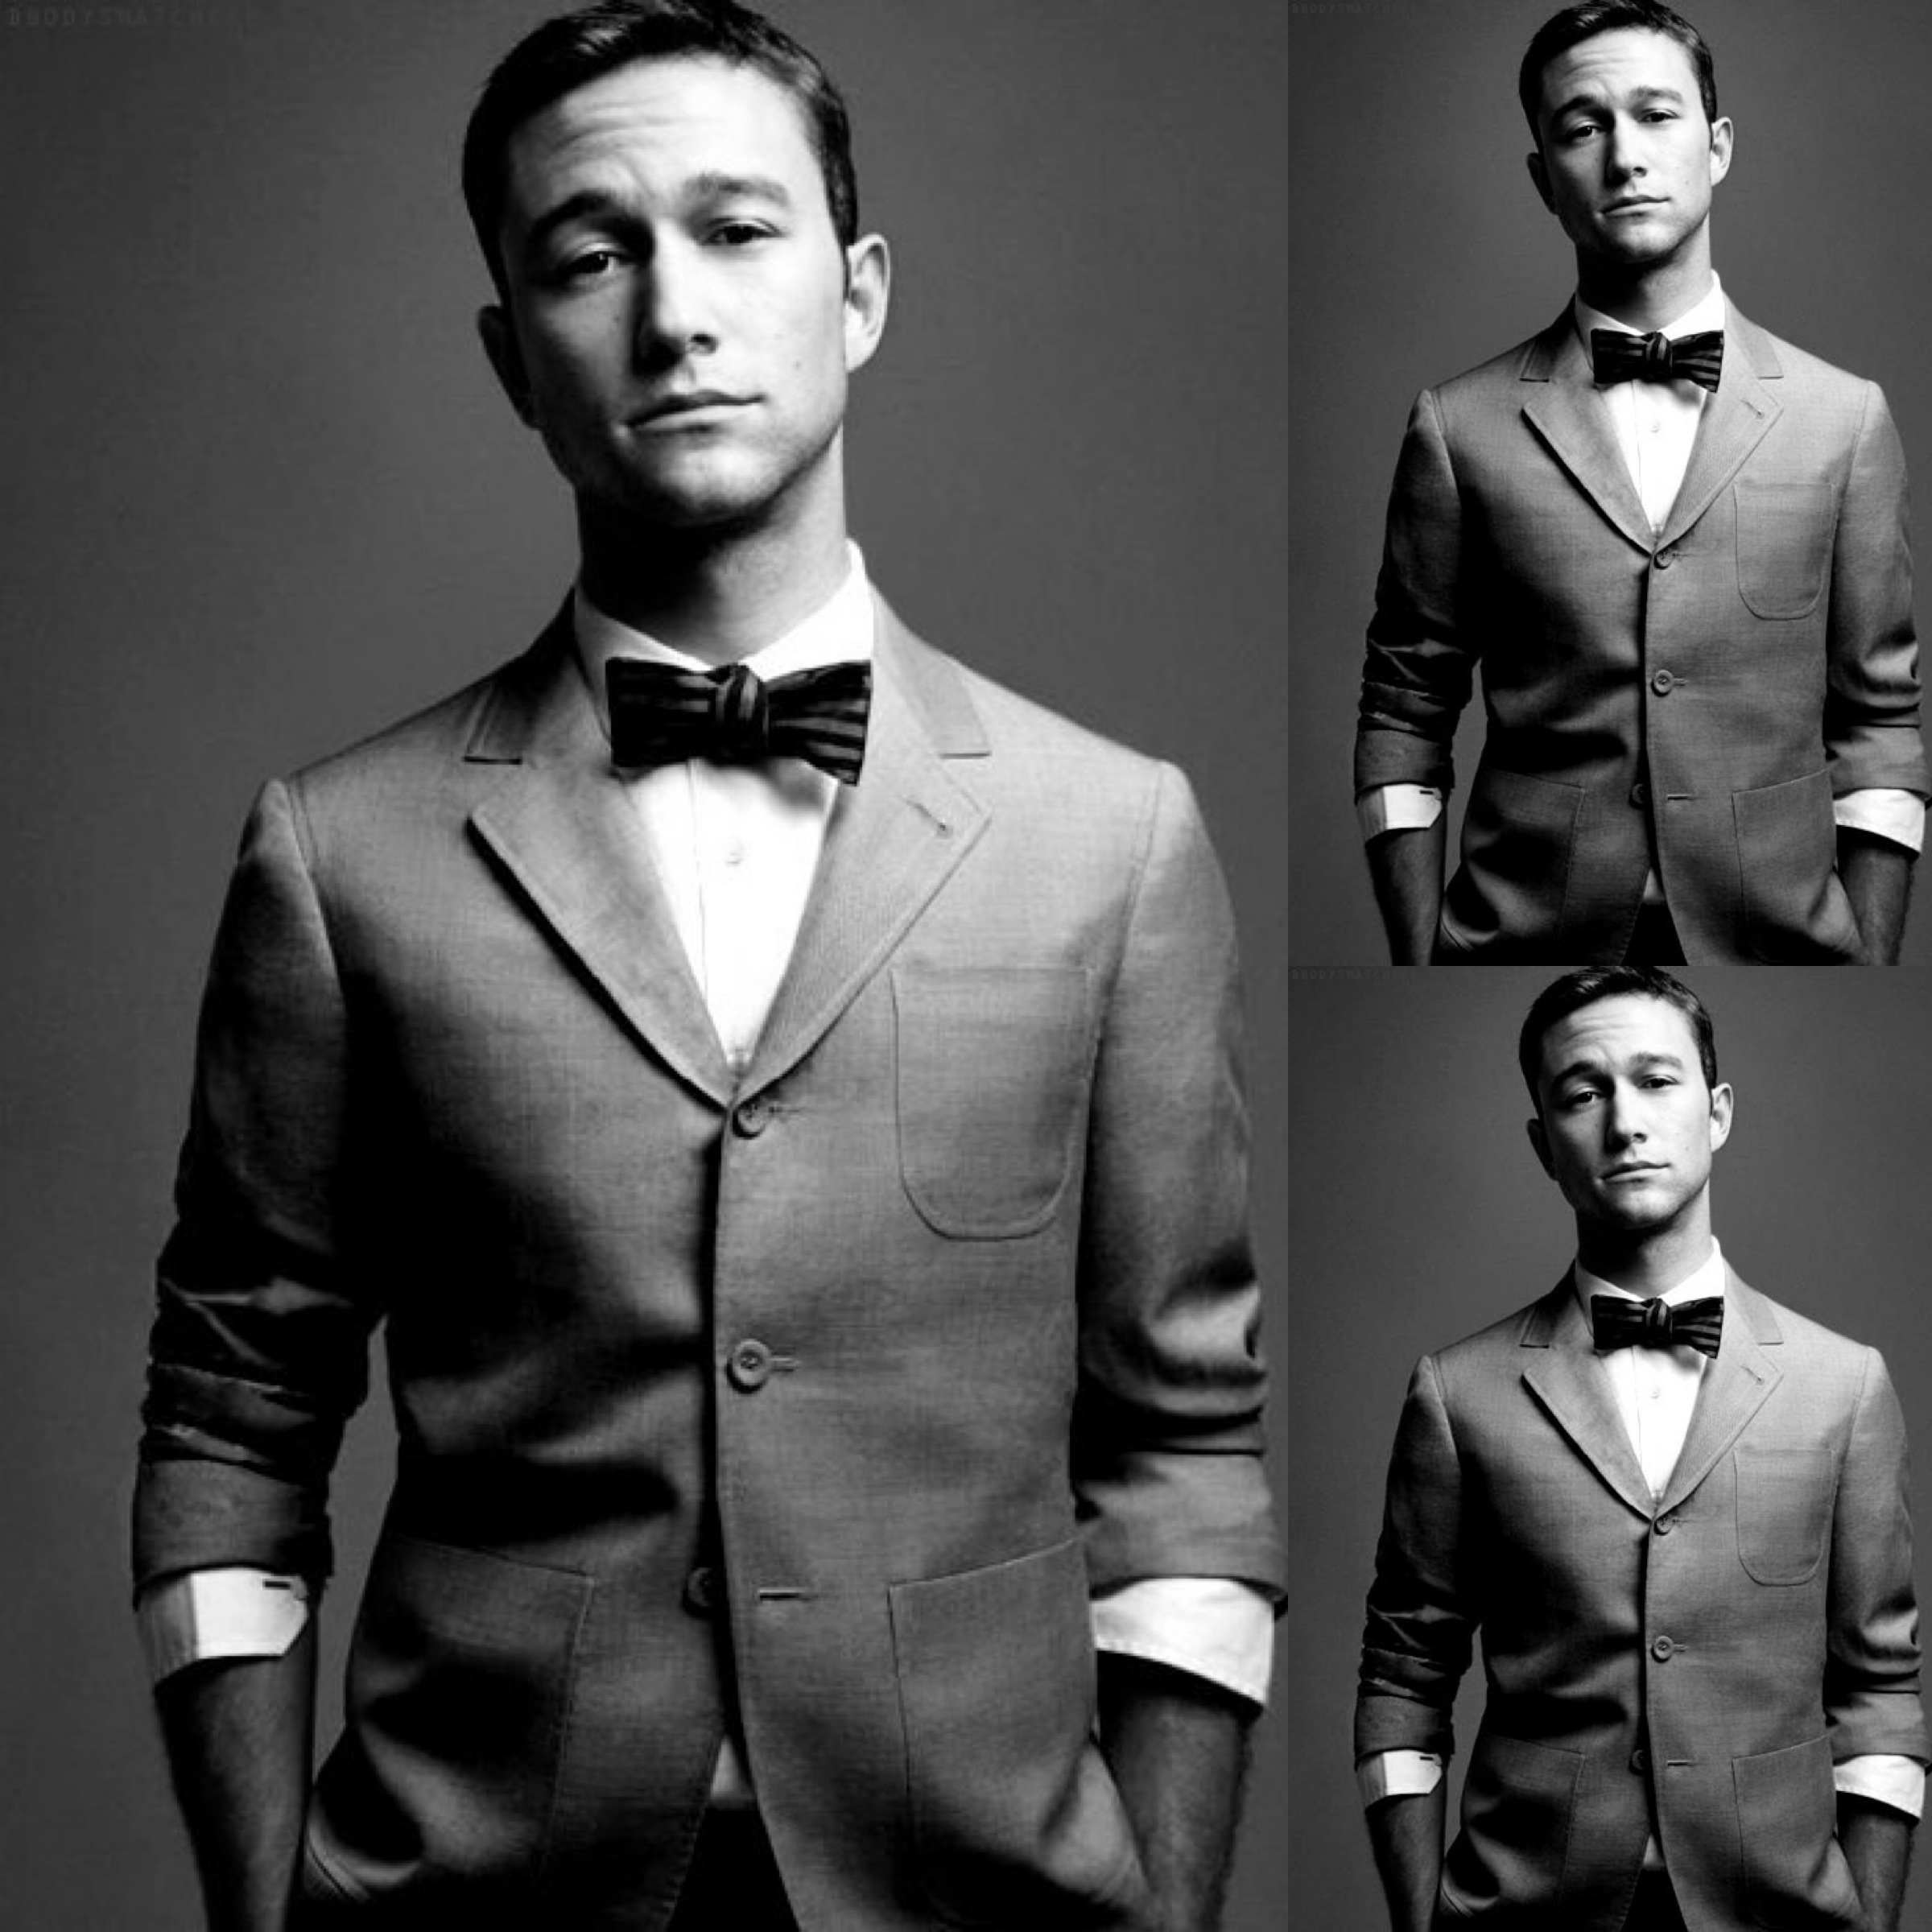 #2 (249 likes) Joseph Gordon-Levitt (love the bowtie)